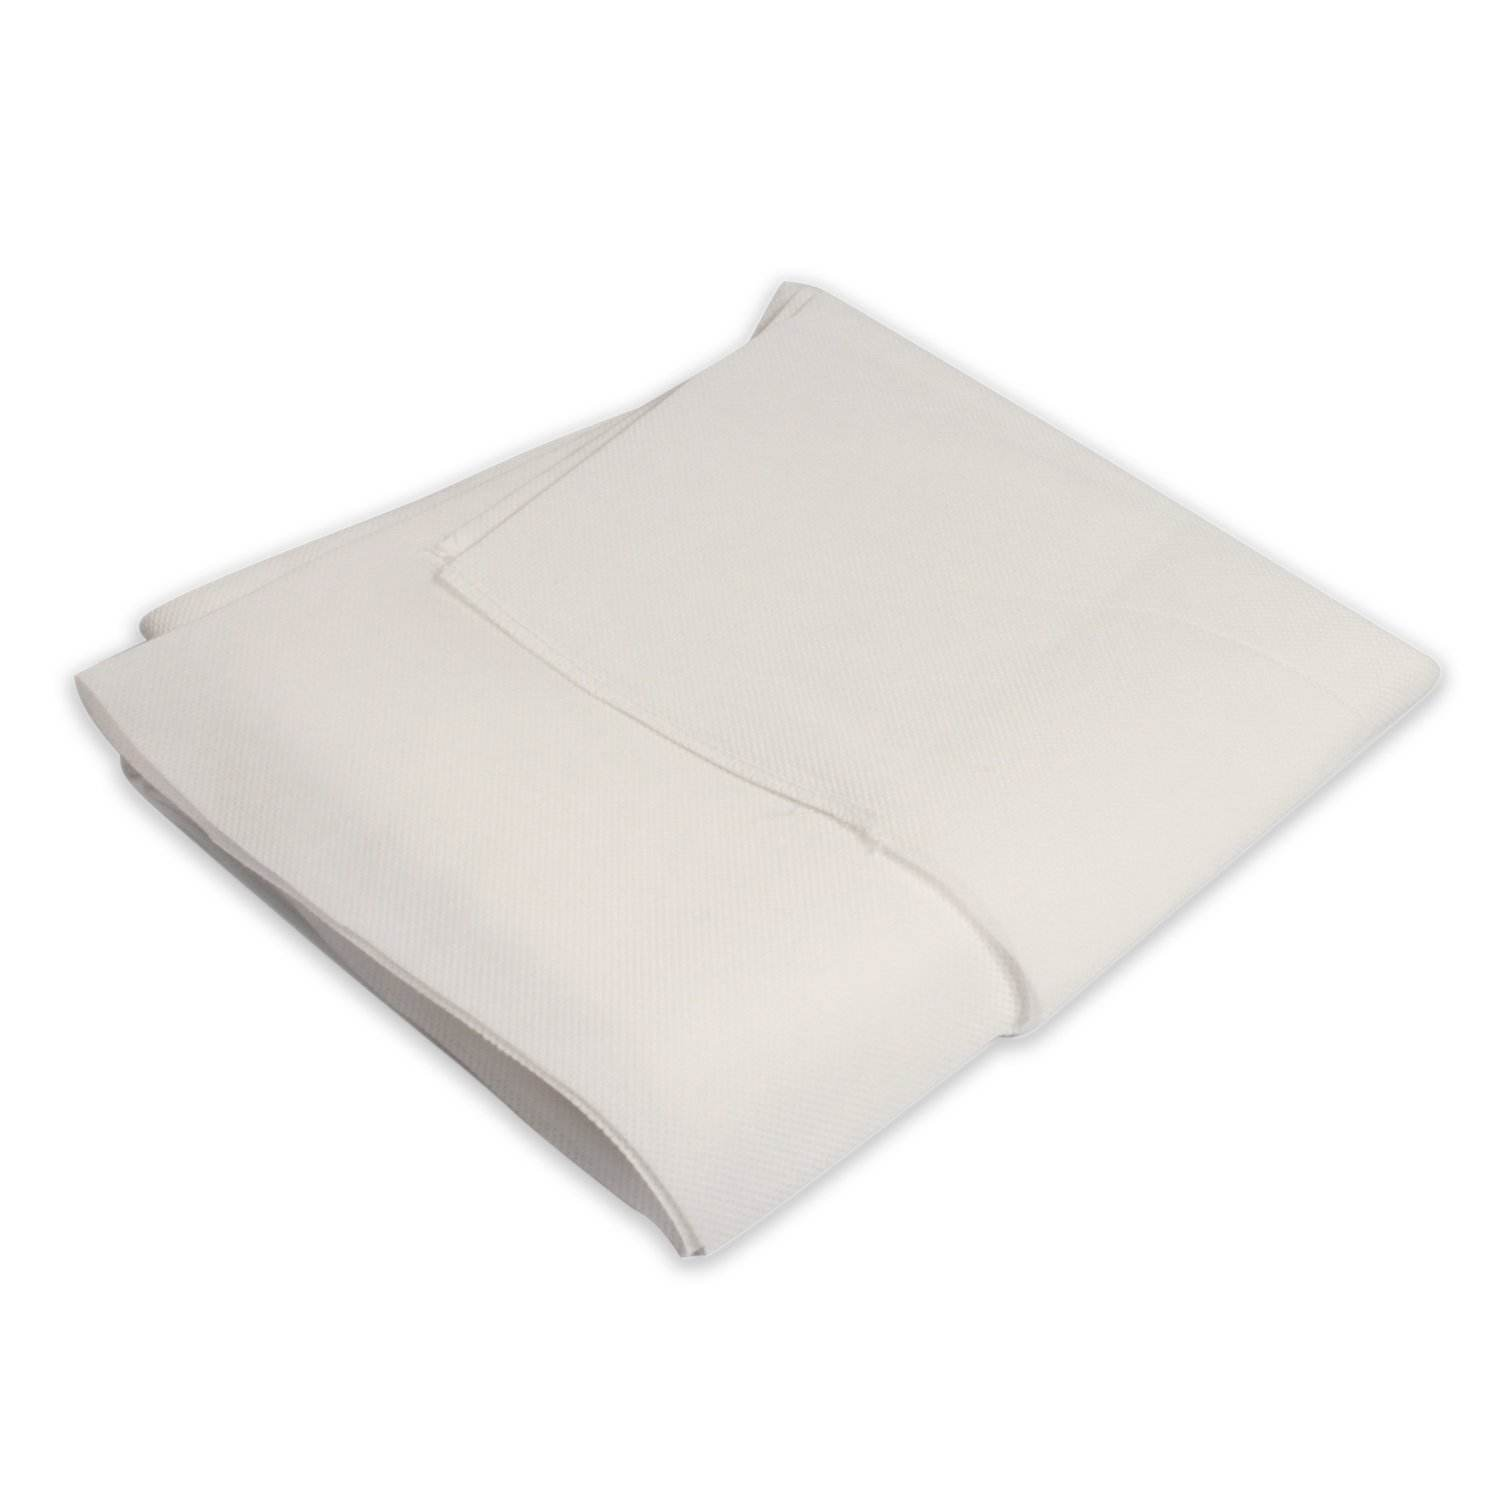 Fumo Heavy duty fitted cot sheet